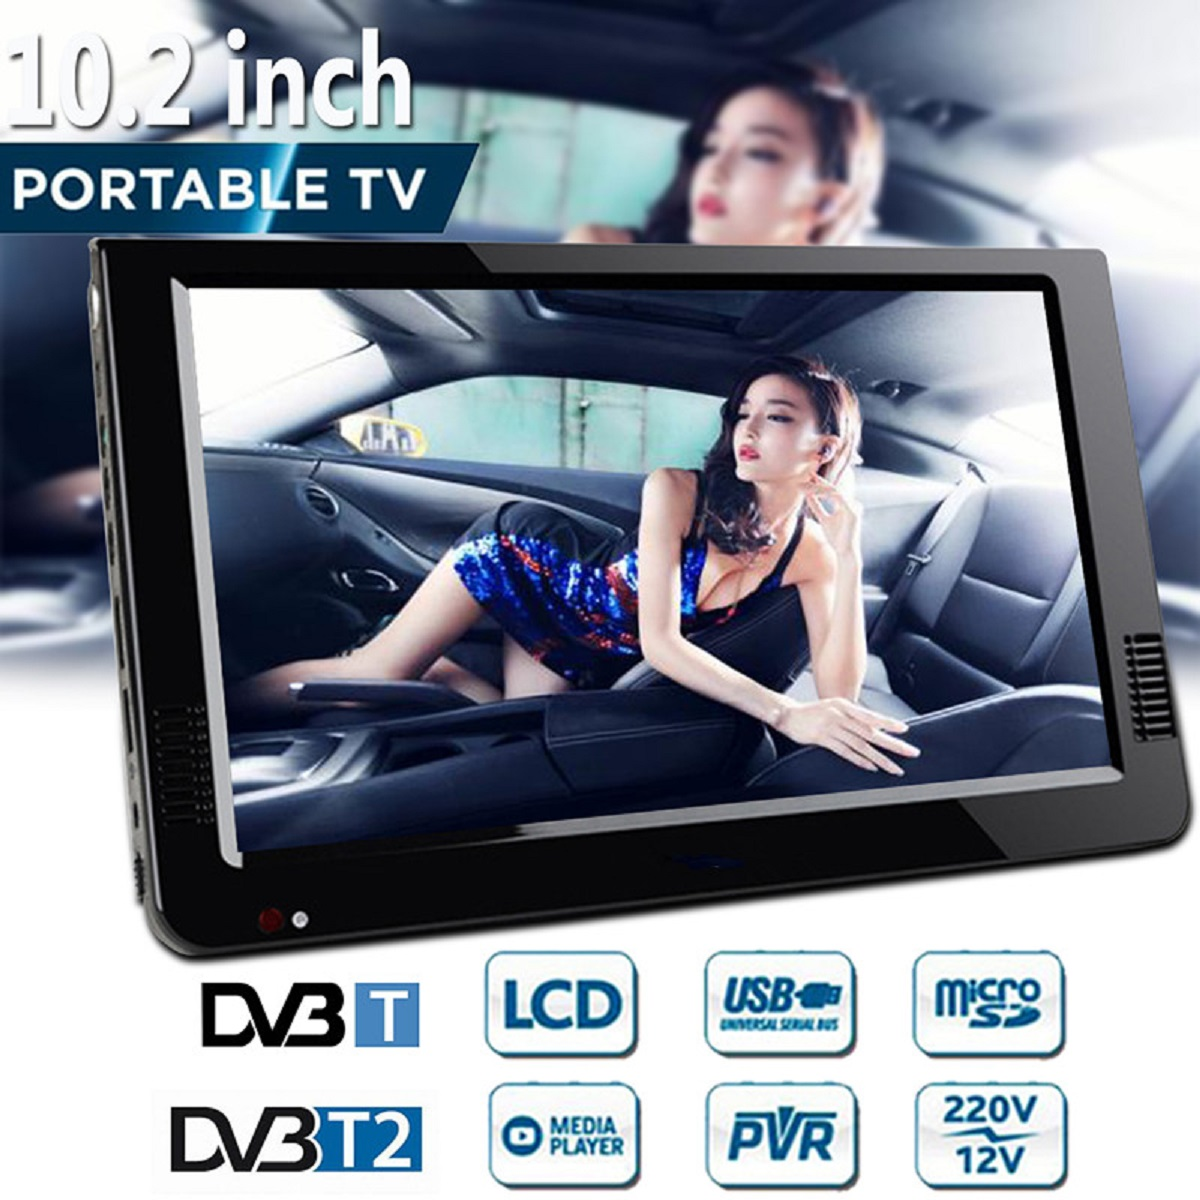 10.2 Inch 12V Portable Digital Analog Television DVB-T / DVB-T2 TFT LED HD TV Support TF Card USB Outdoor Audio Car Television